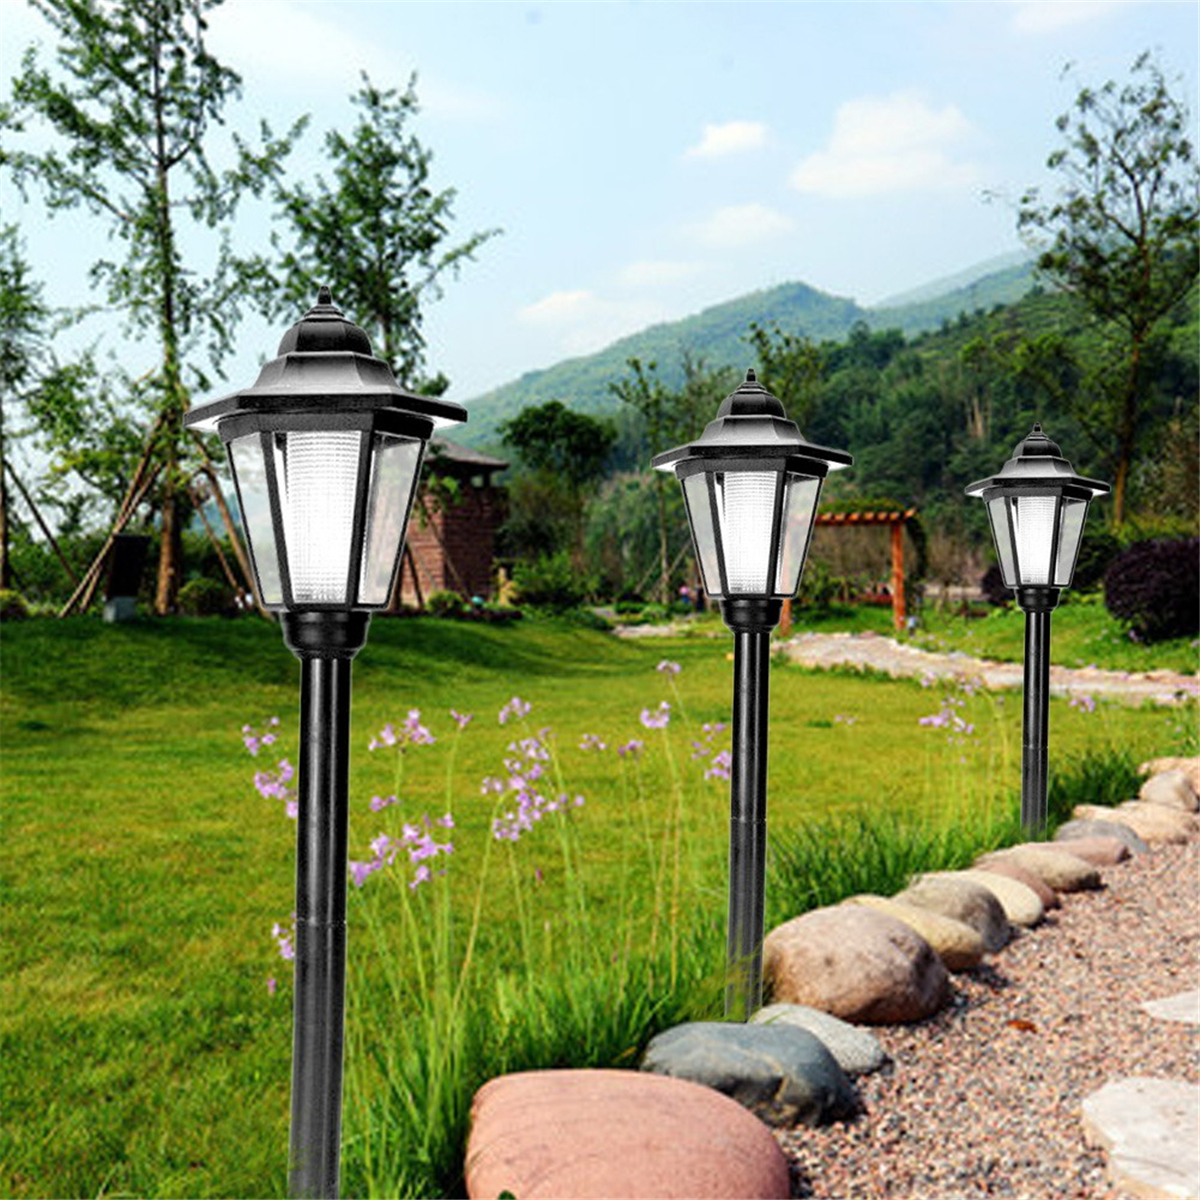 Solar Lamp Post Outdoor Garden Led Solar Lamp Light Under Ground Lawn Lamp Post Lanterns Pillar Yard Garden Decoration Lighting White Light In Lawn Lamps From Lights